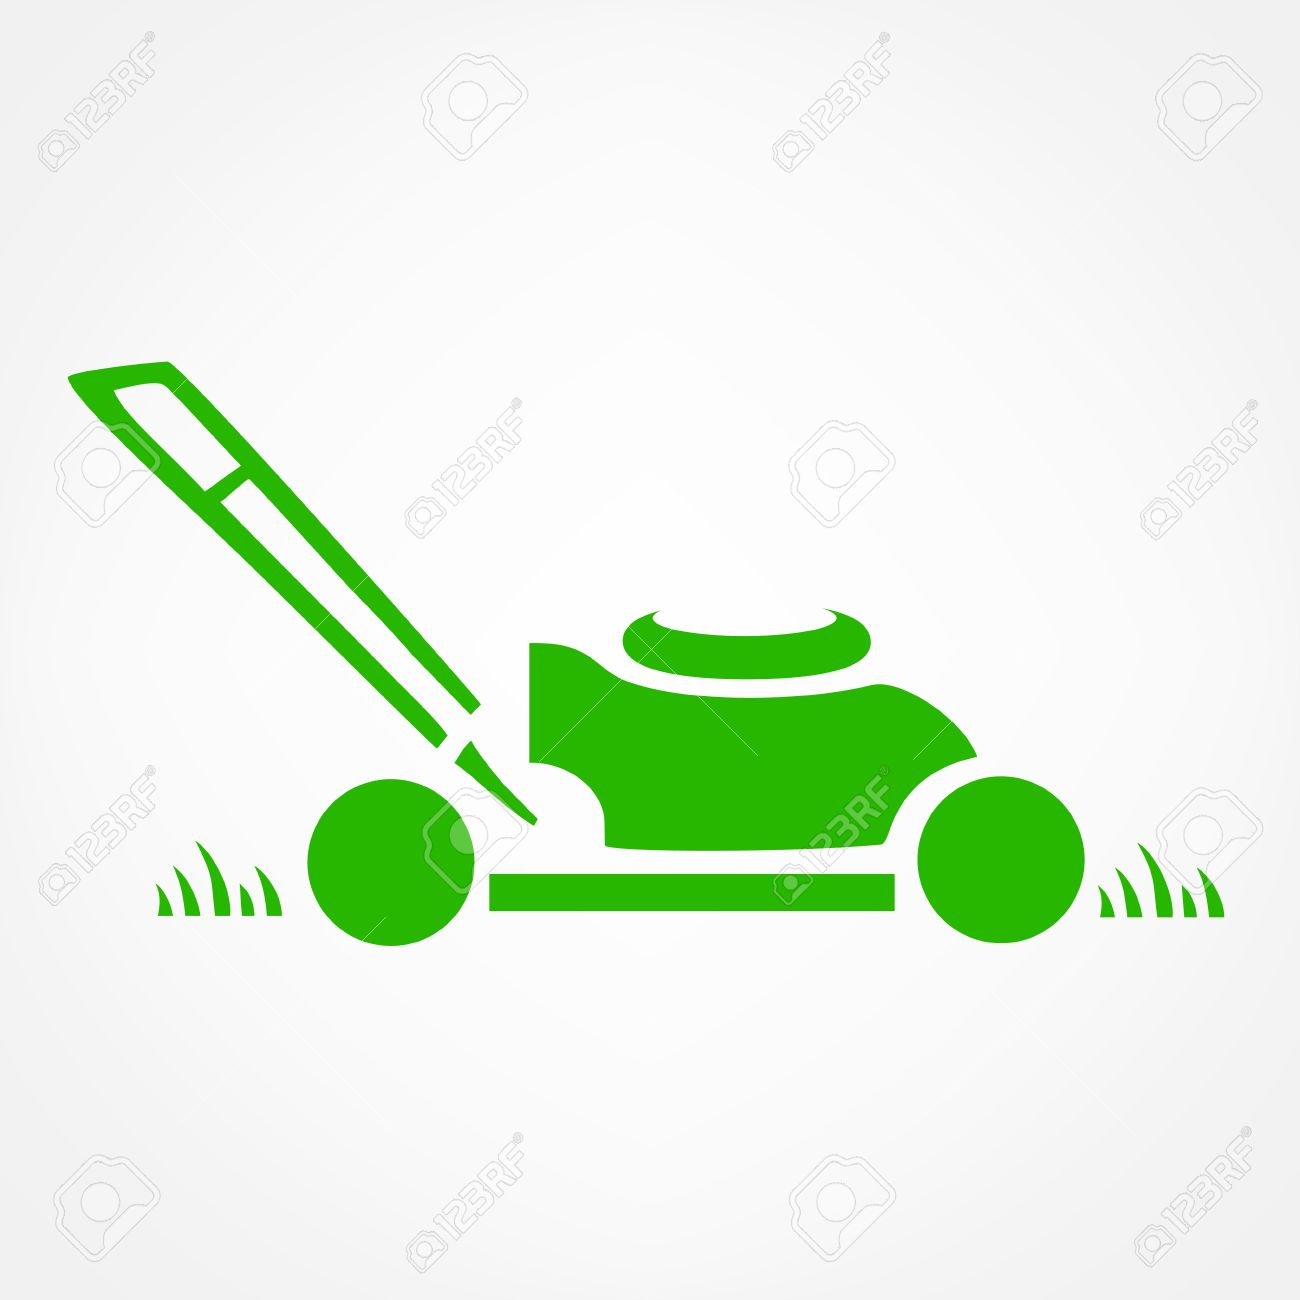 lawn mower logo vector royalty free cliparts vectors and stock rh 123rf com